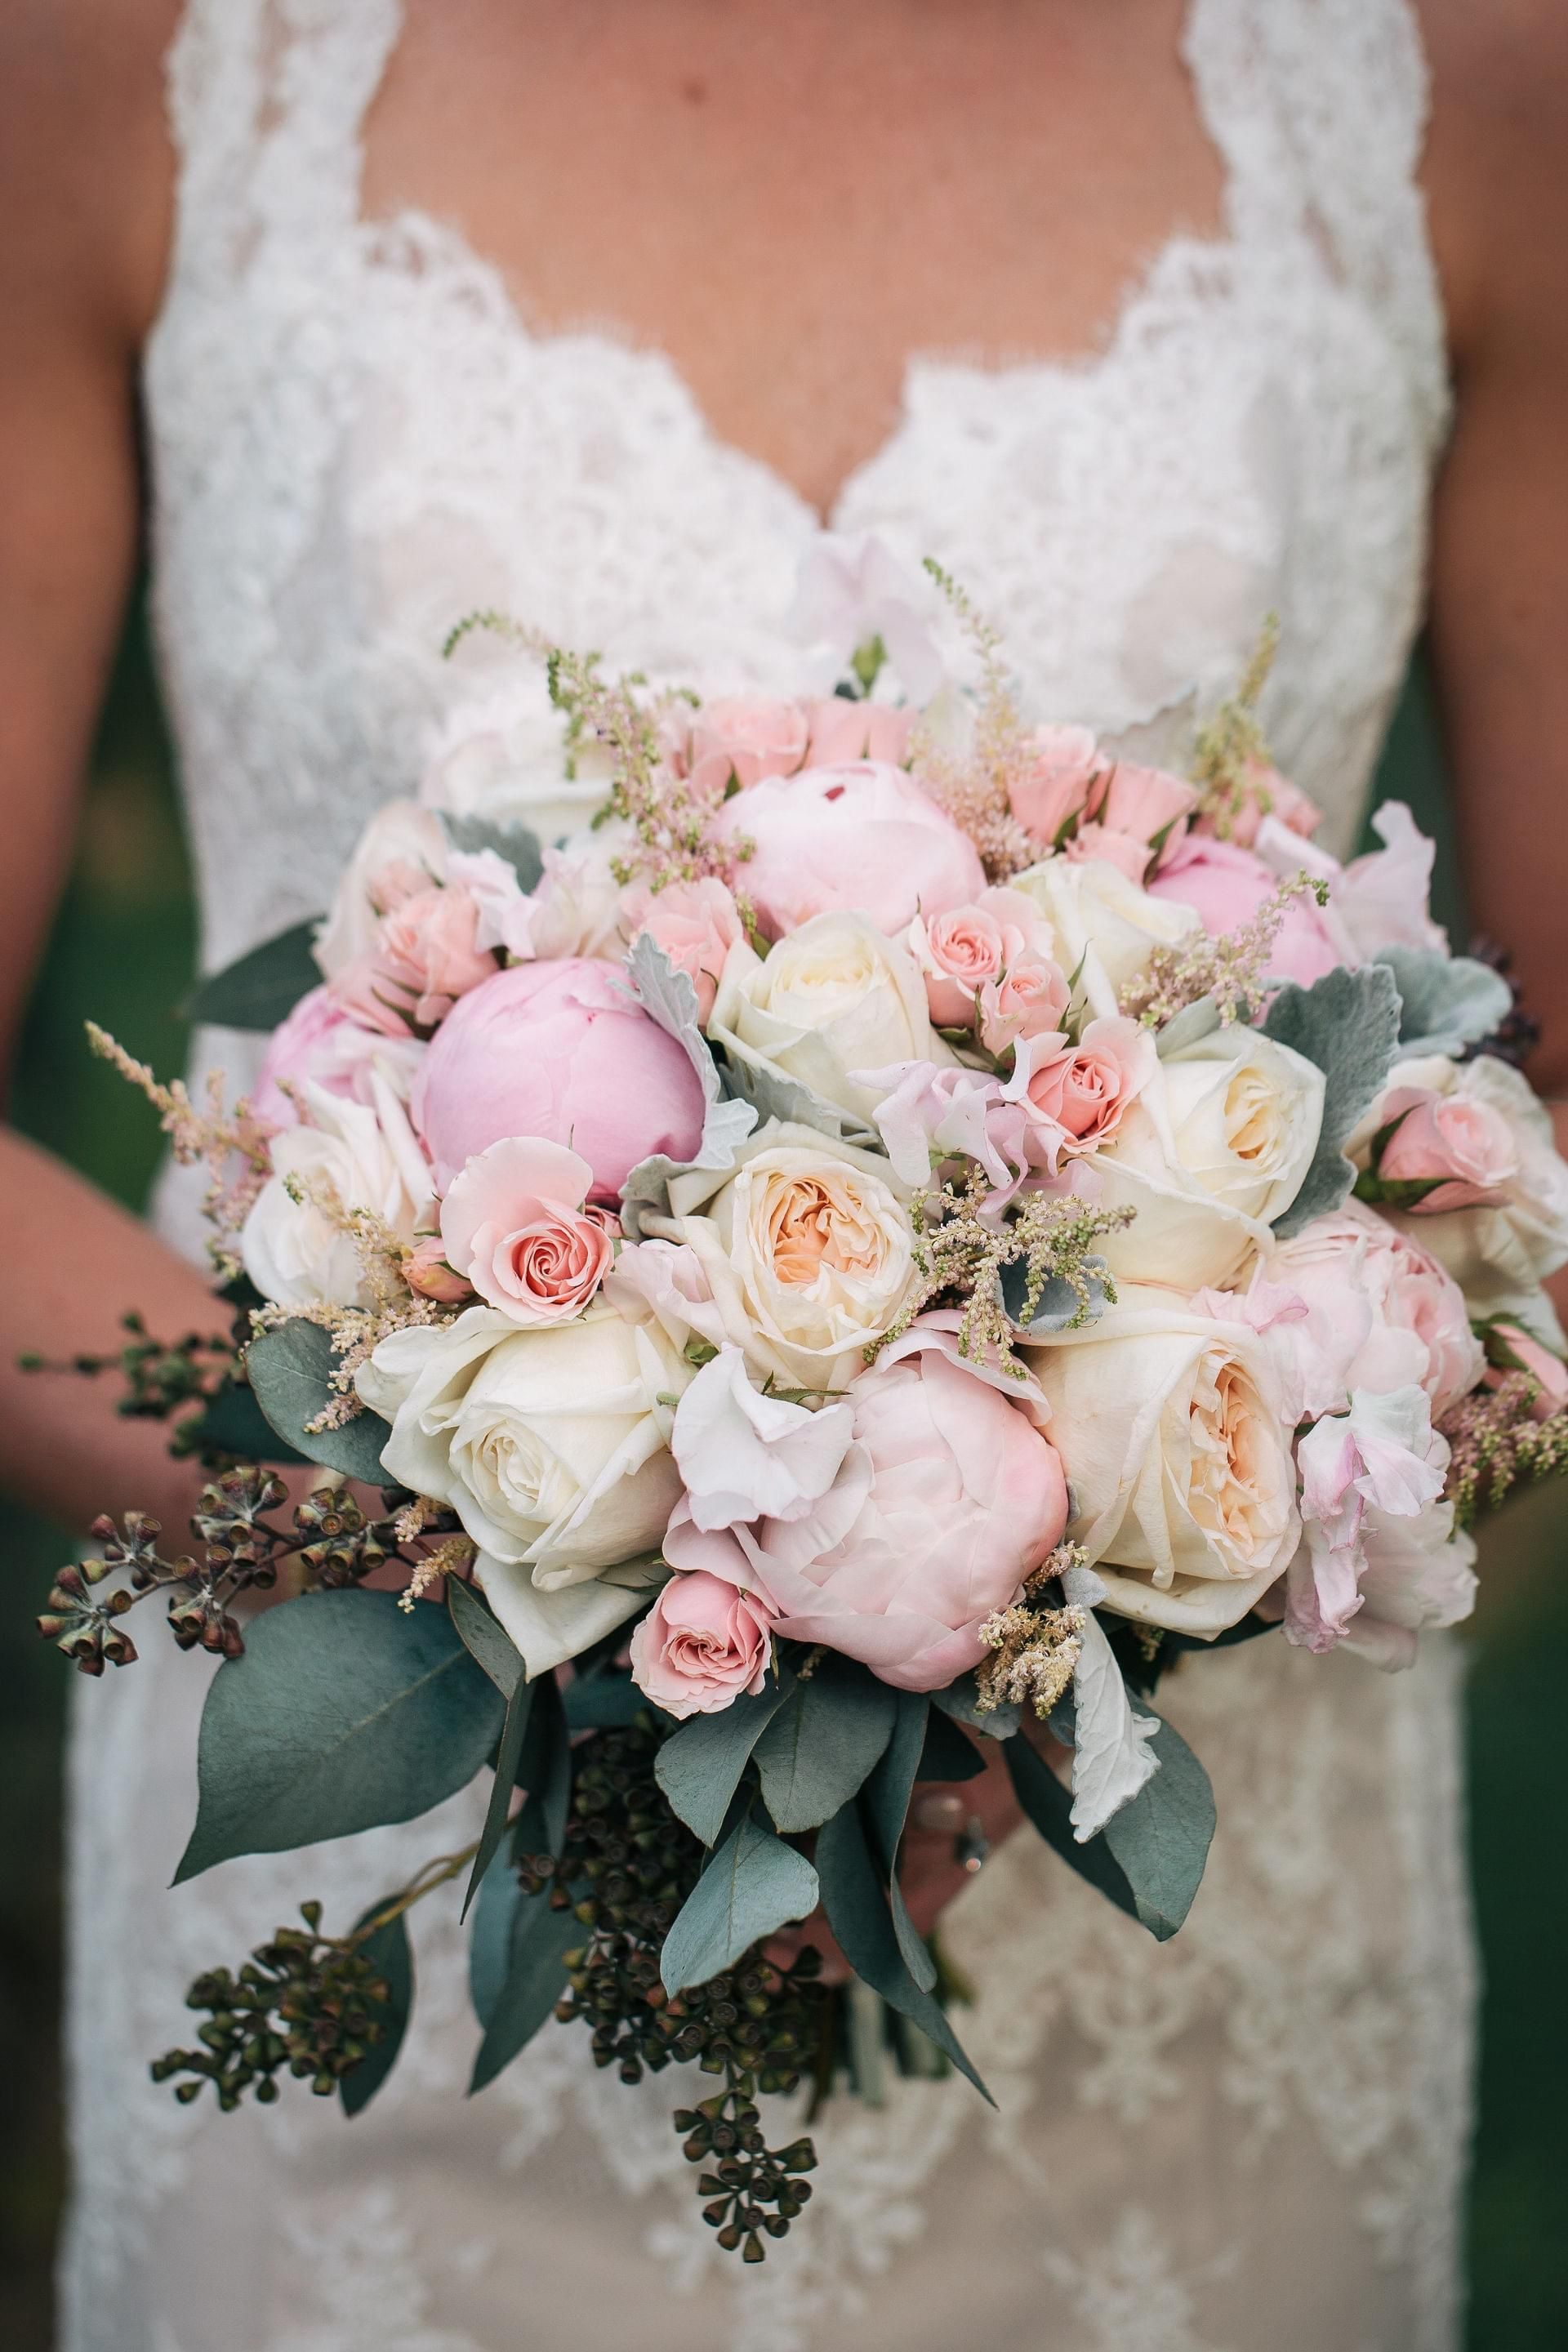 I love this bouquet! I'd probably have a pop of brighter color added into the mix, though.